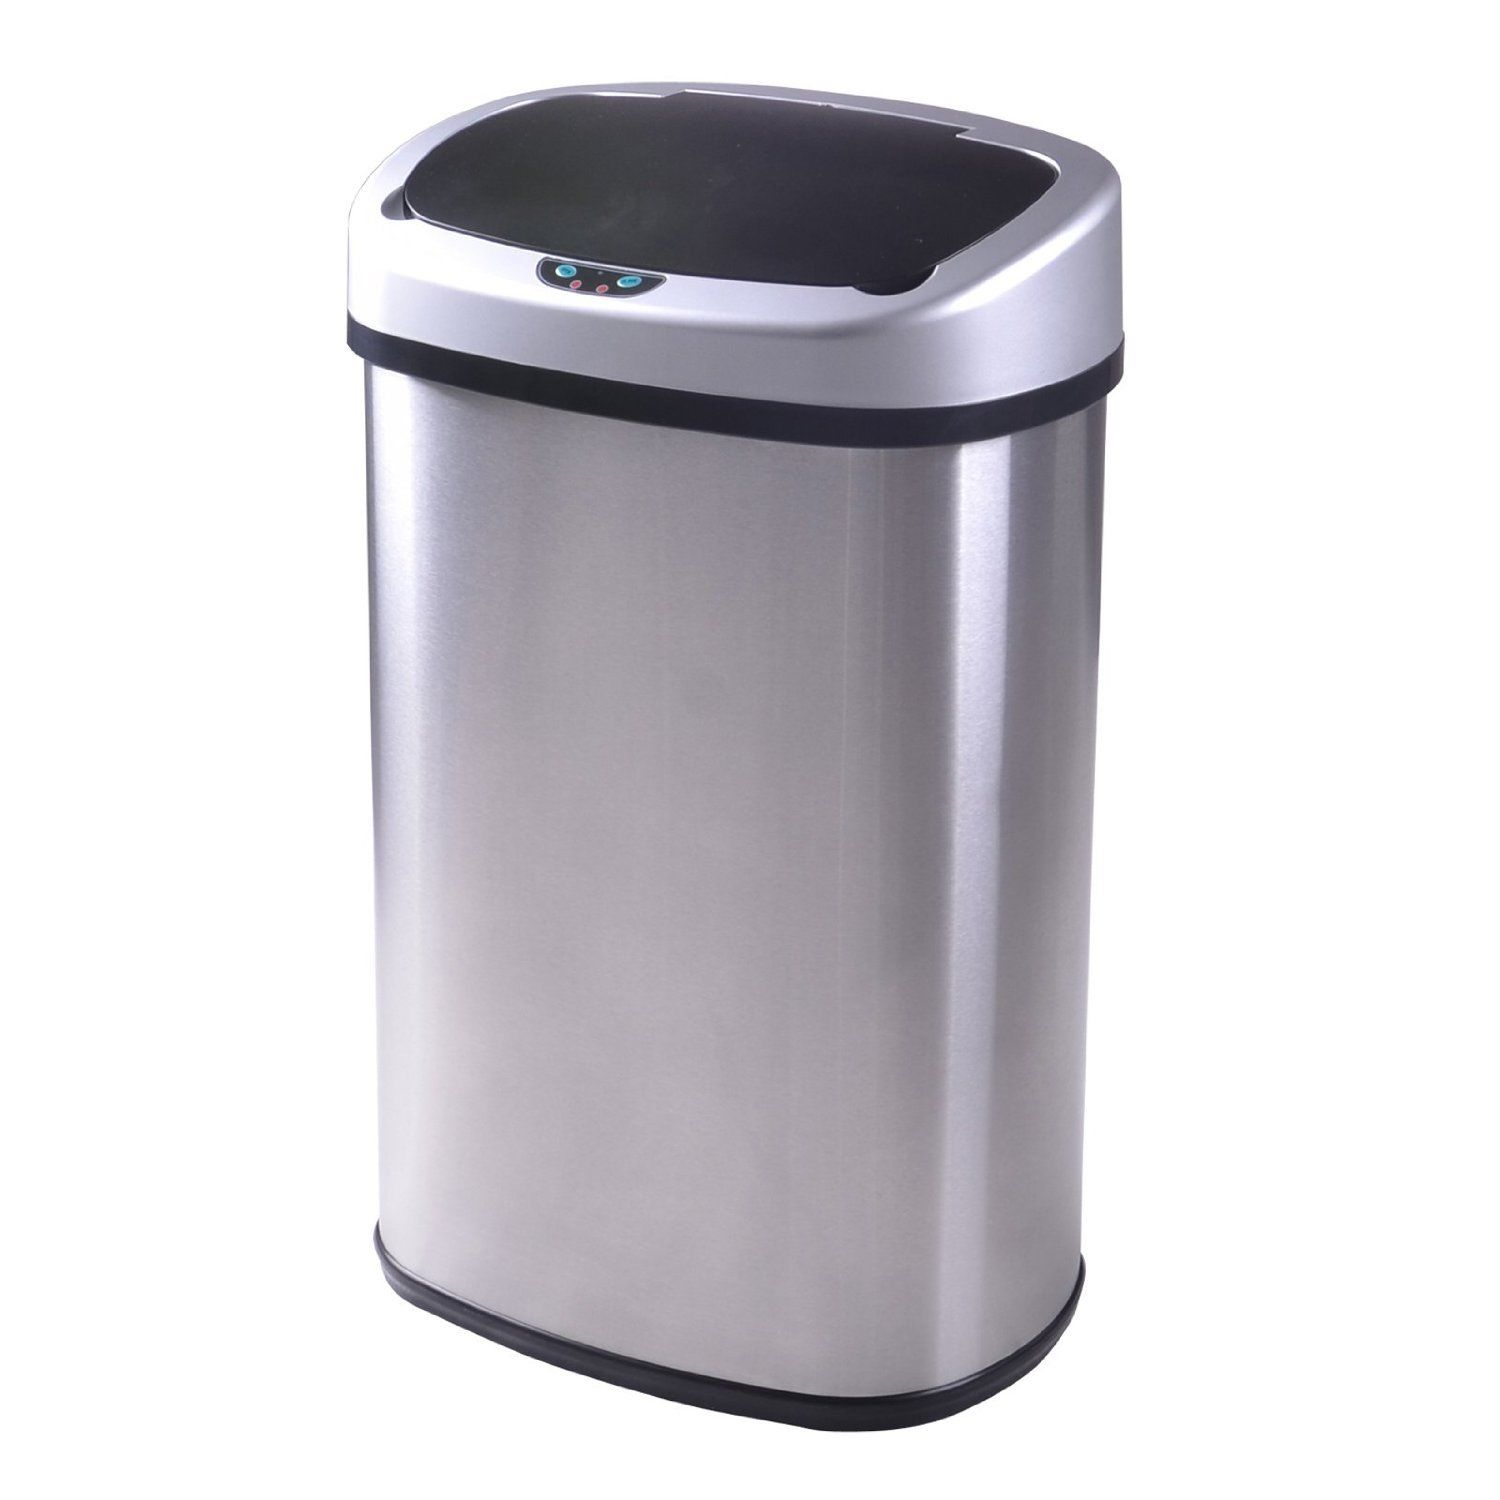 Pretty Kitchen Trash Cans 13 Gallon Touch Free Sensor Automatic Stainless Steel